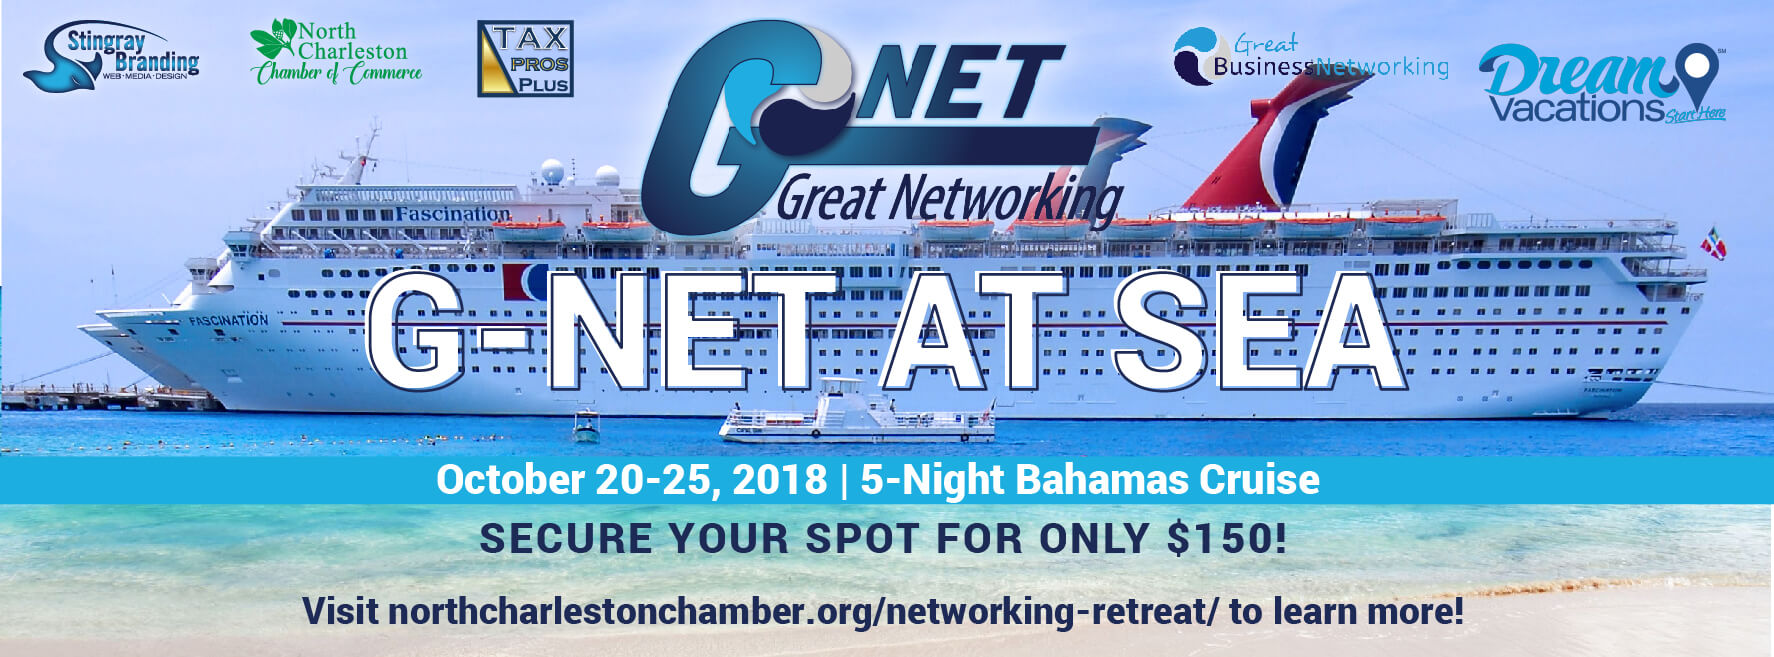 G-Net at Sea Annual Retreat 5 Night Caribbean Cruise Header Image